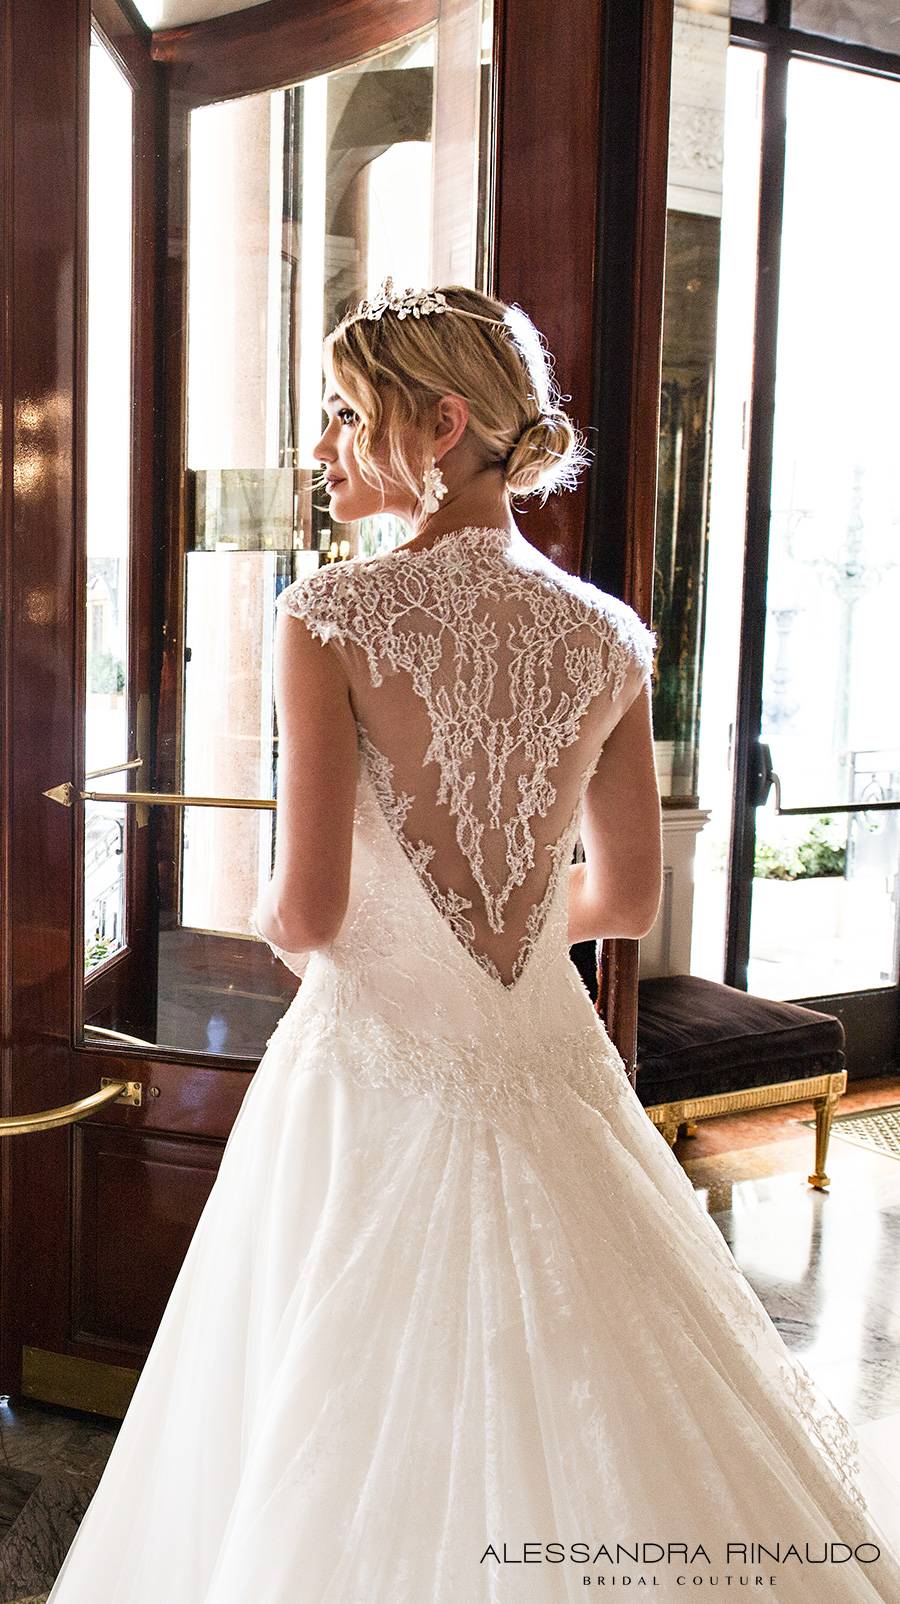 alessandra rinaudo 2017 bridal cap sleeves illusion round neck sweetheart neckline drop waist heavily embellished bodice a line wedding dress lace back long train (boadicea) zbv